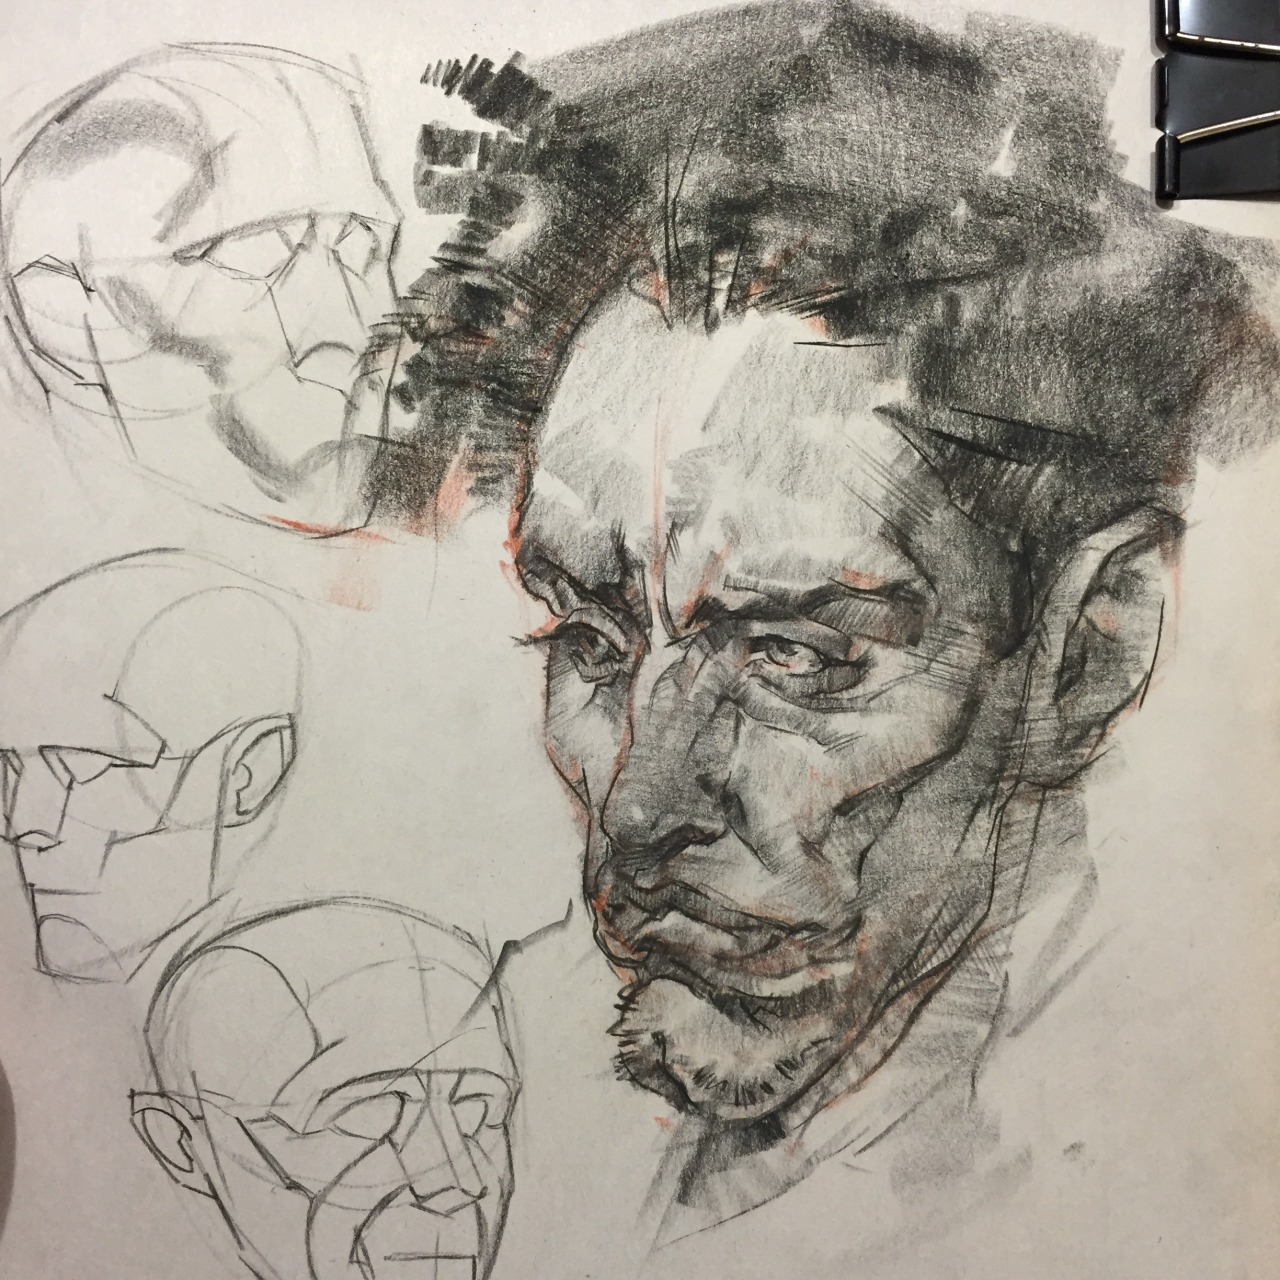 1280x1280 Art Of Andrew Sides Study Of A Fechin Drawing, Charcoal On Newsprint